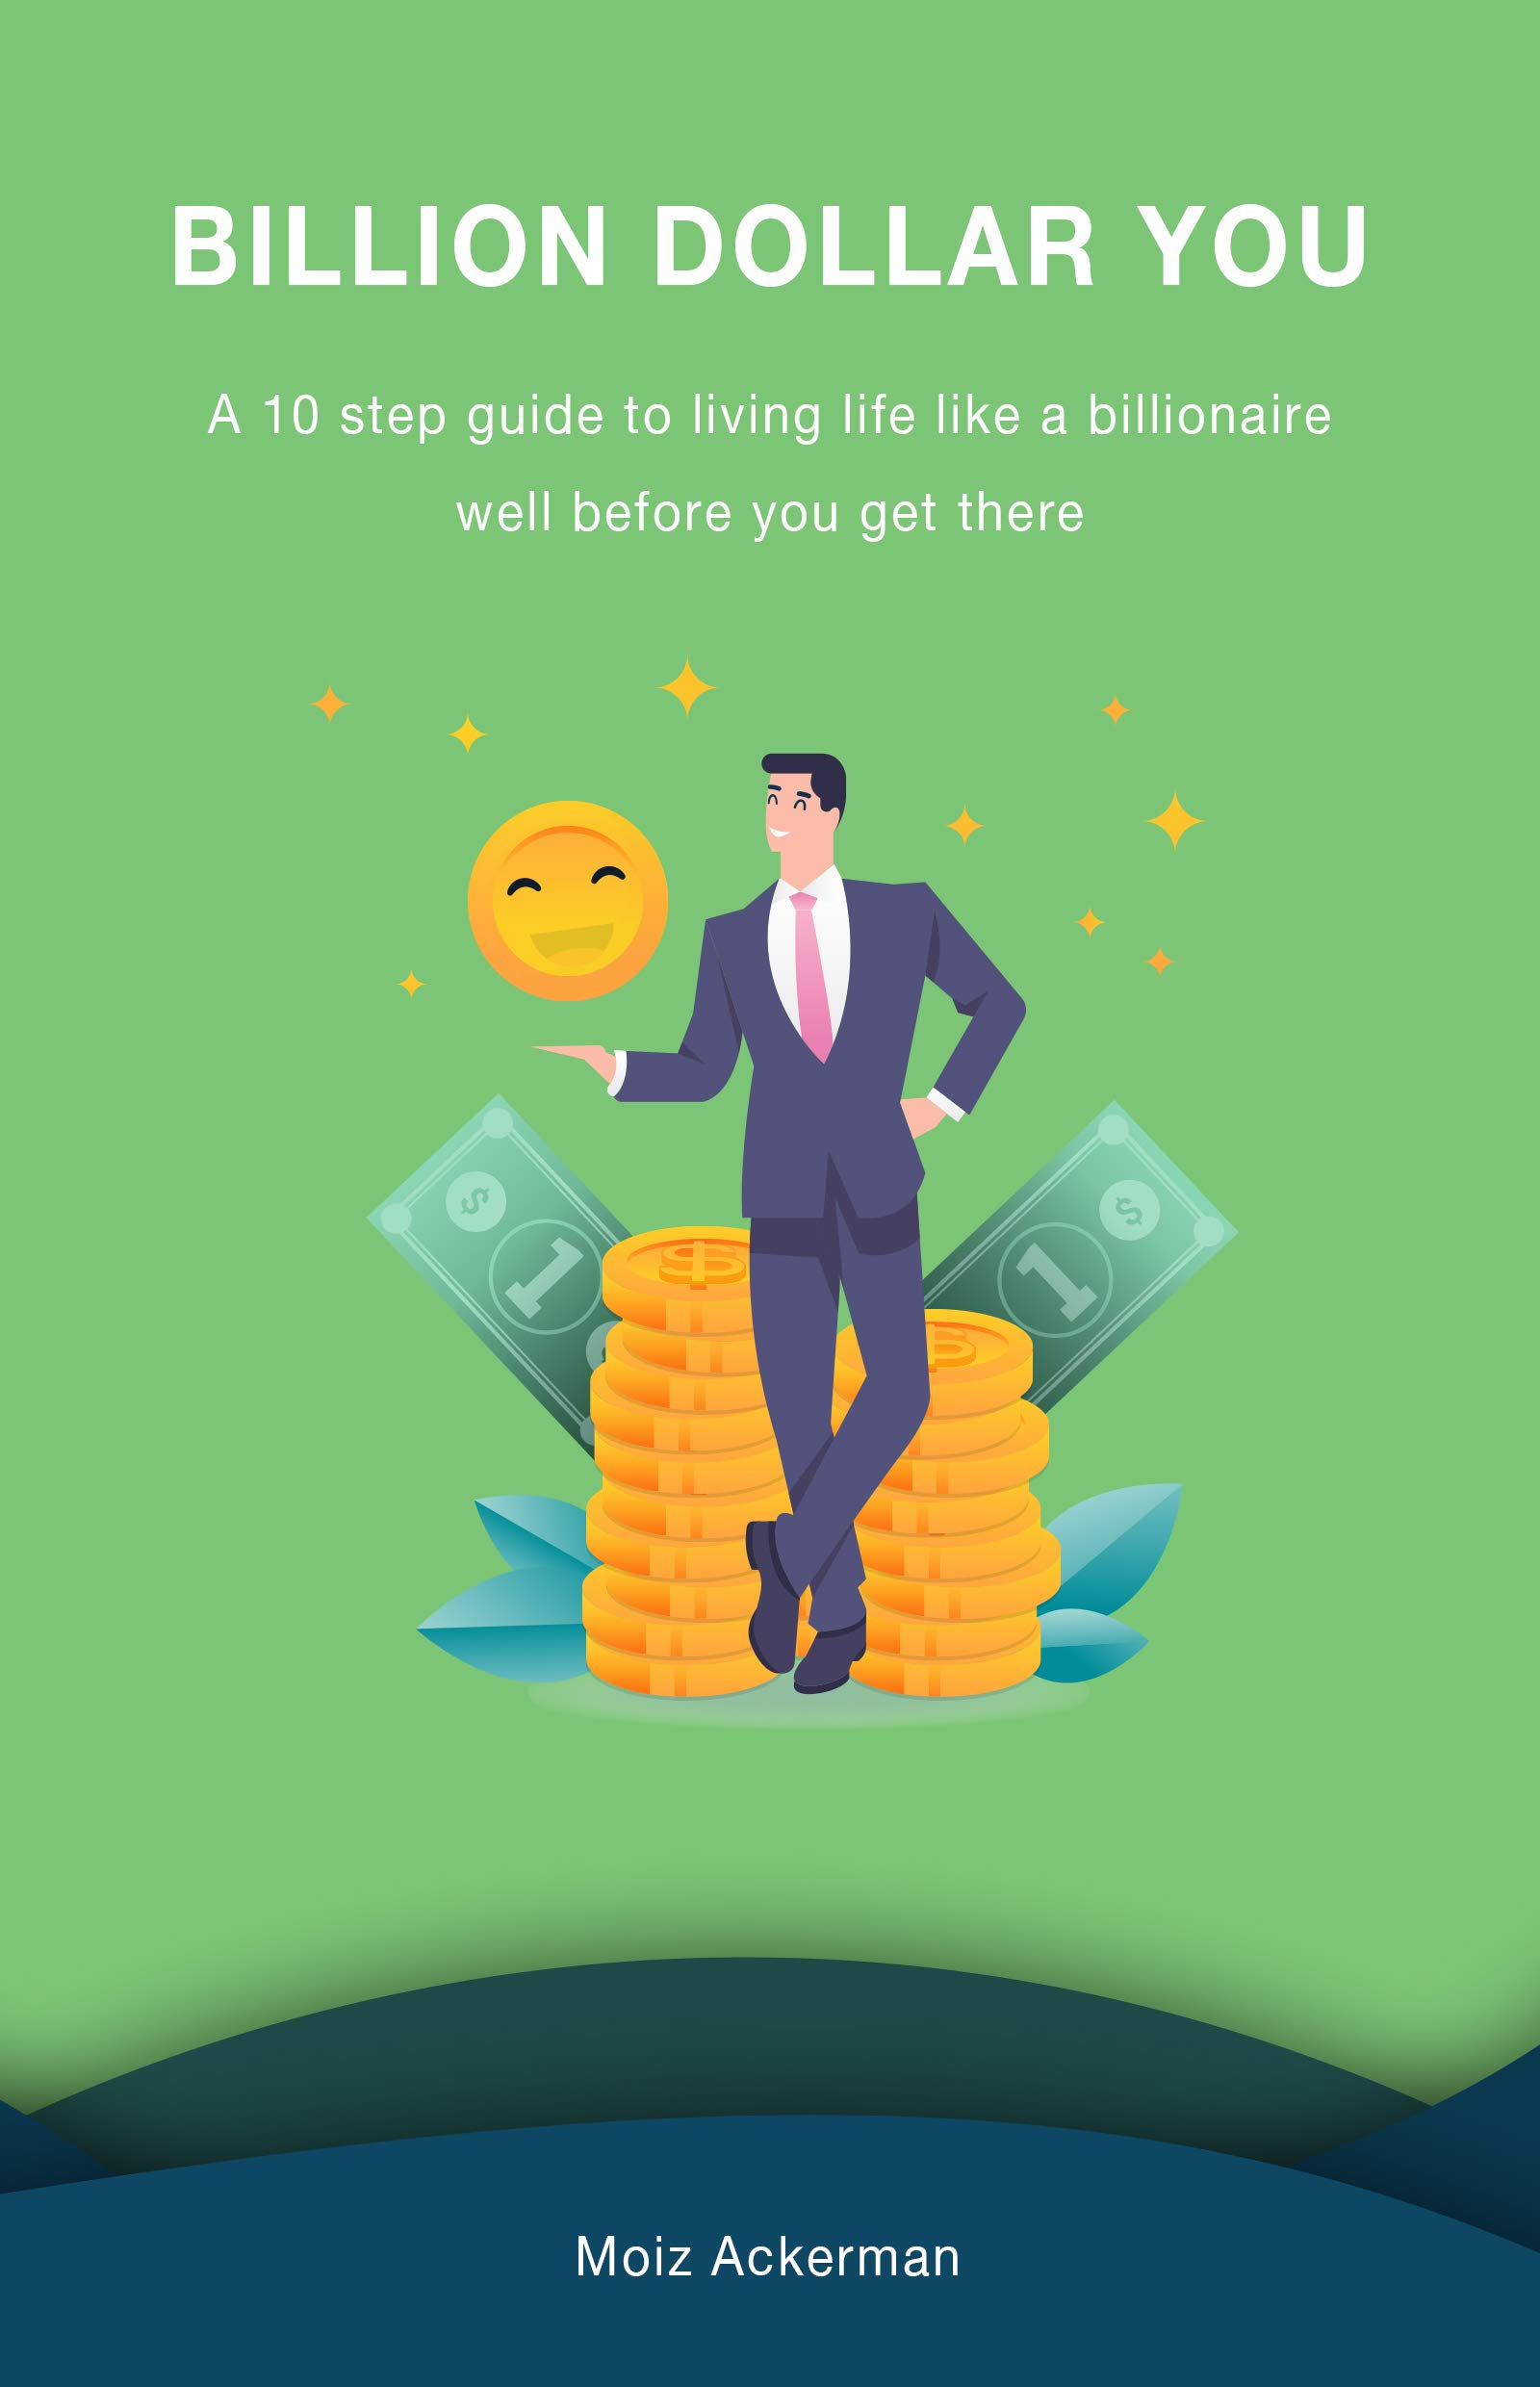 Billion dollar YOU: A 10 step guide to living life like a billionaire well before you get there